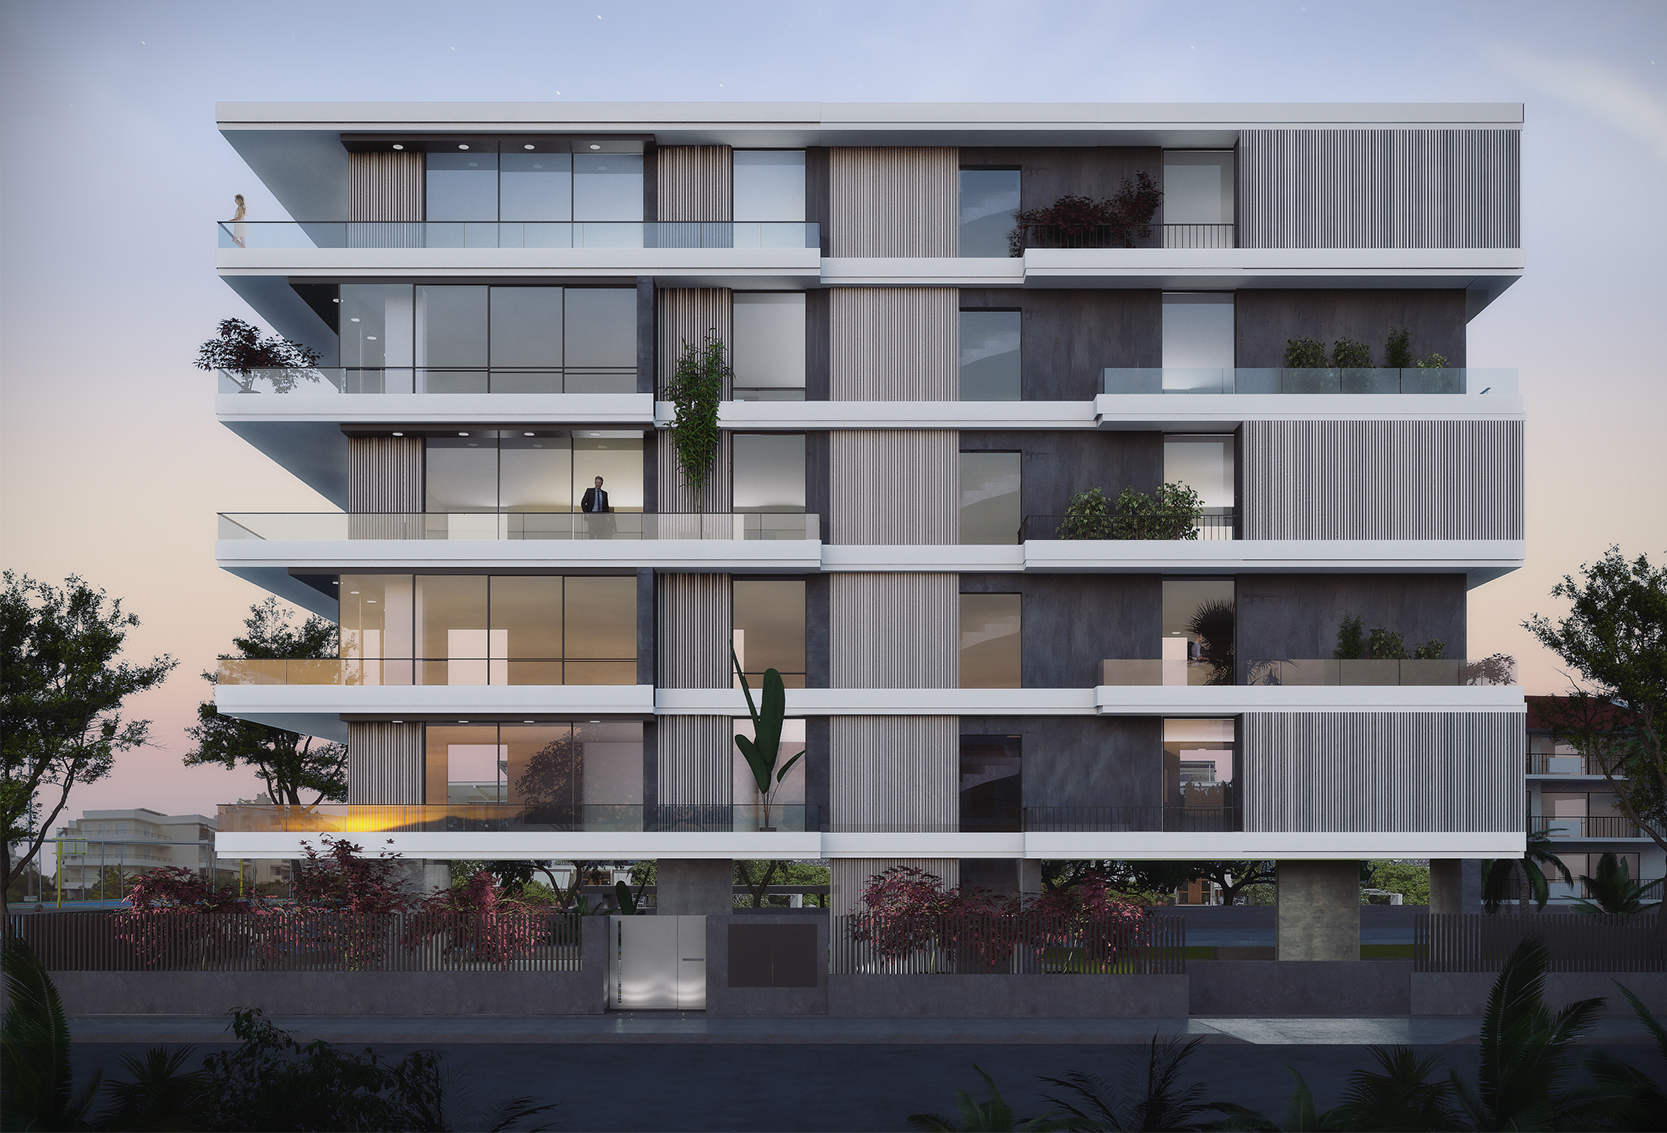 New Residence Building at Glifada